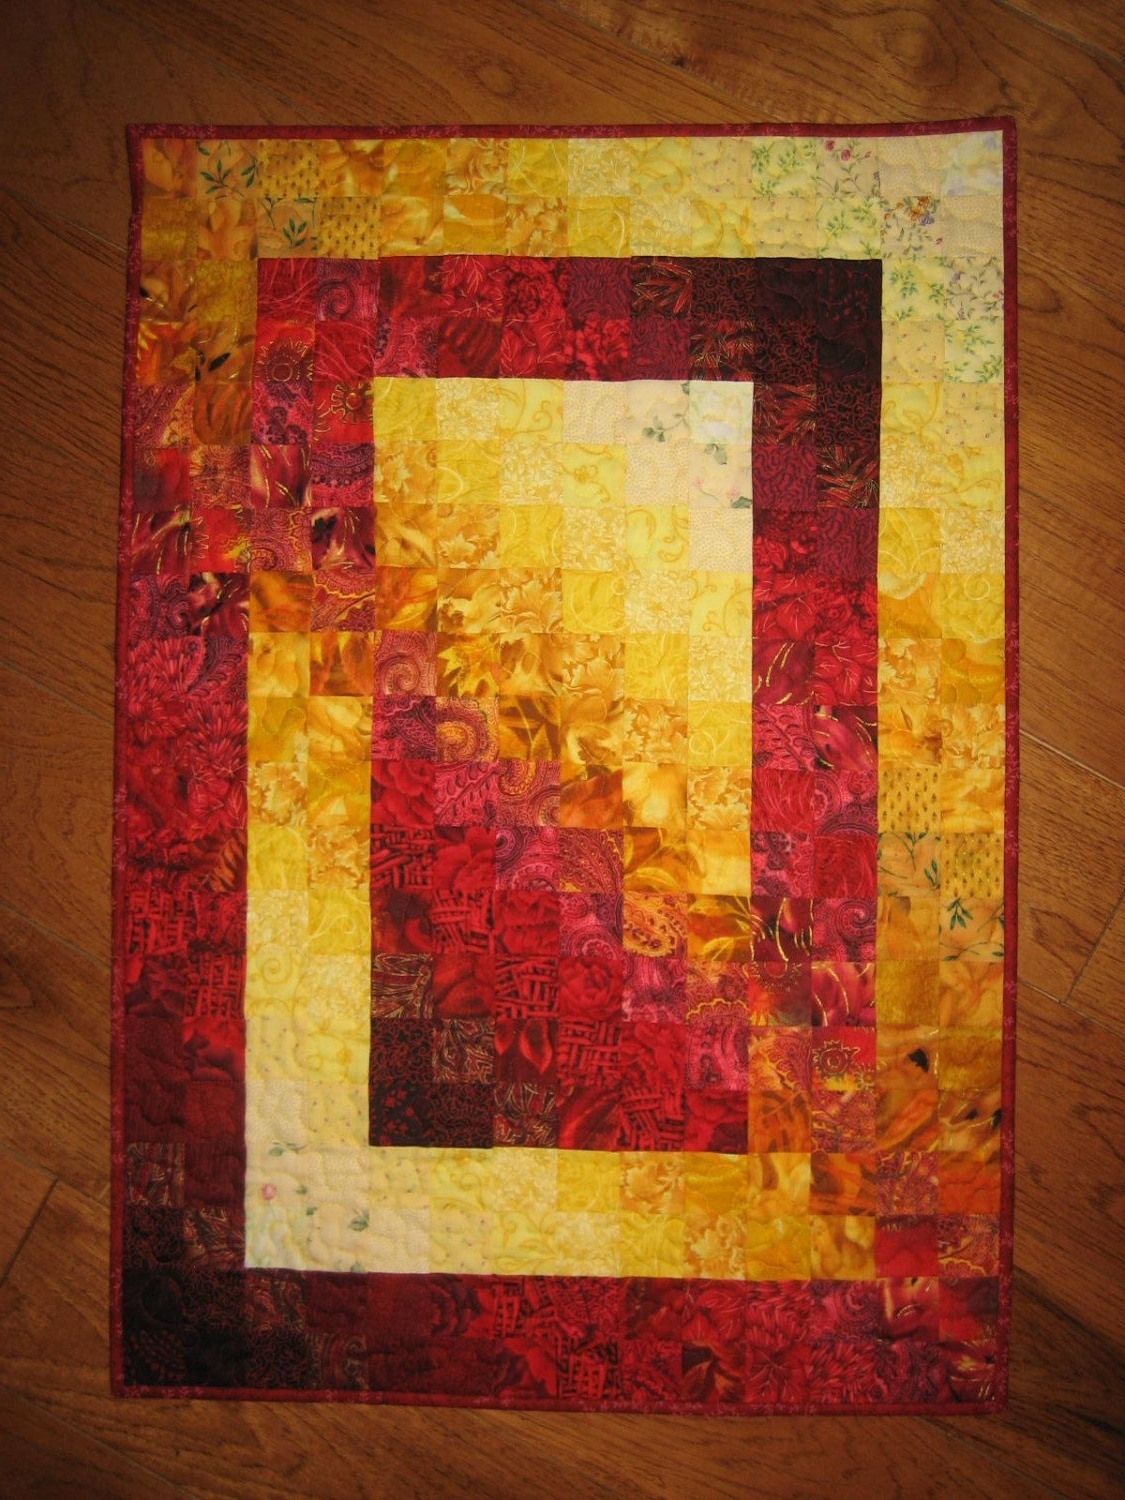 Handmade Textile Wall Art Within Best And Newest Art Quilt, Fire Red Yellow Orange Fabric Wall Hanging Abstract (View 11 of 15)